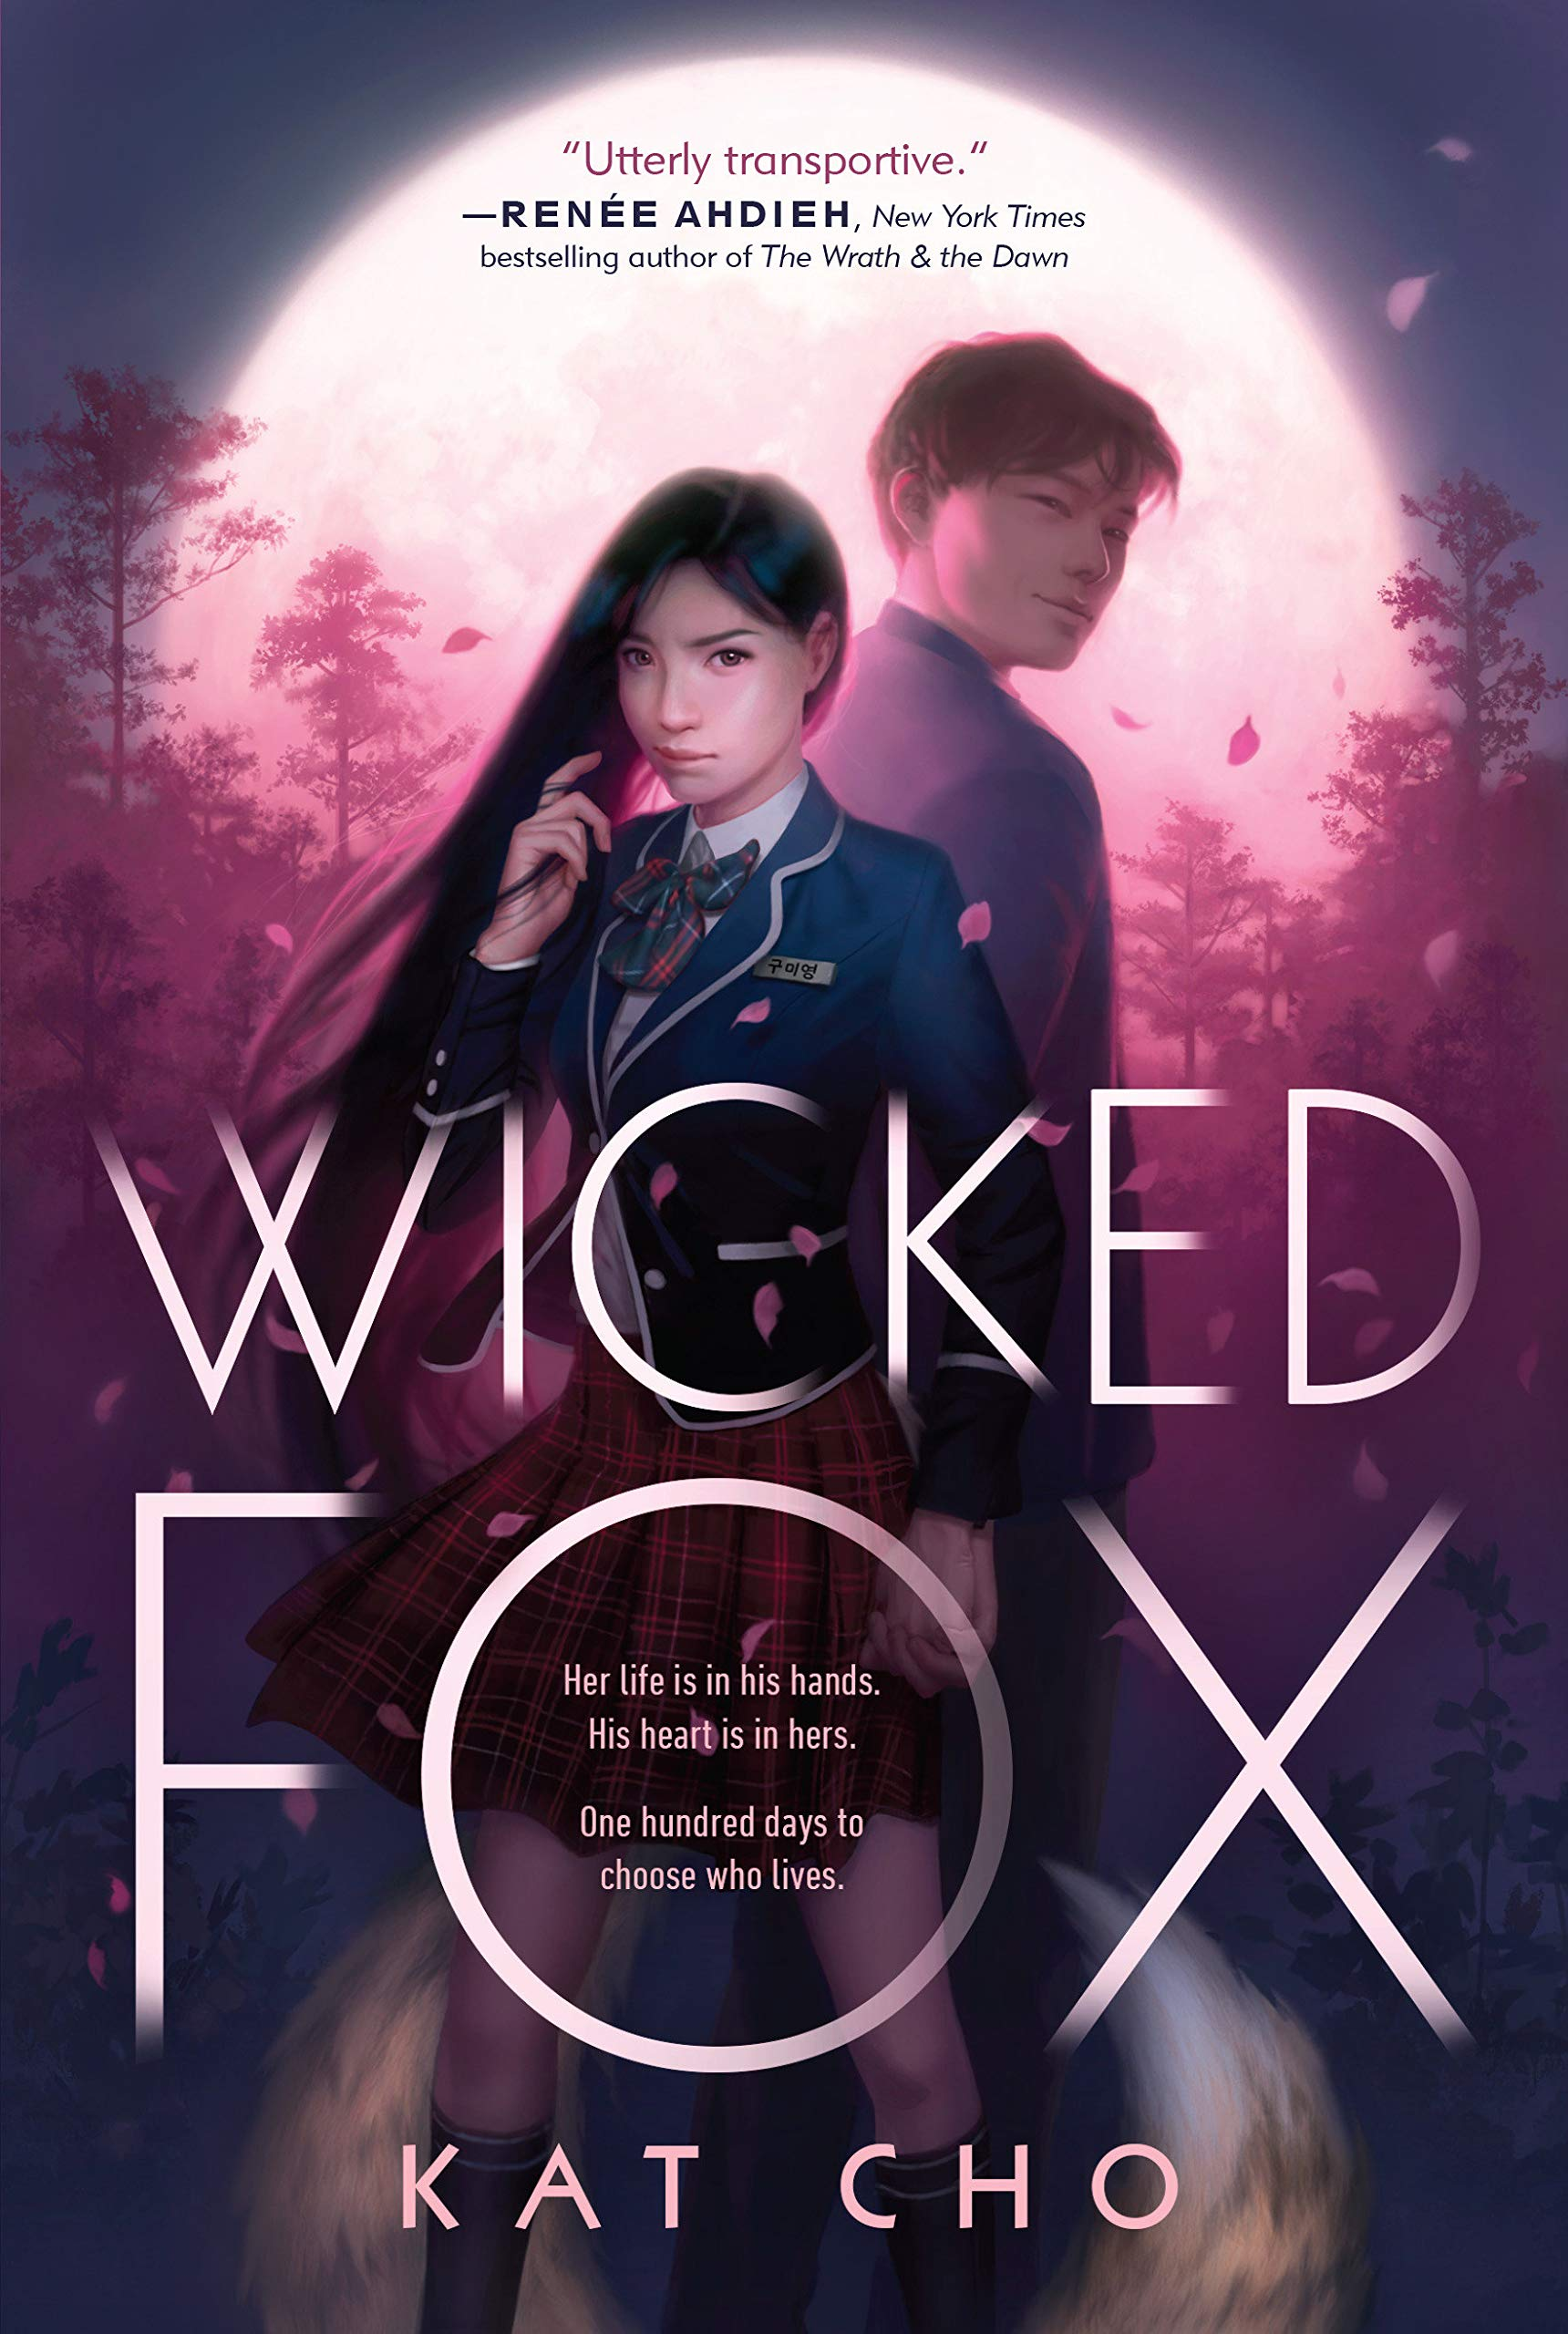 Wicked Fox: Amazon.co.uk: Cho, Kat: 9781984812346: Books